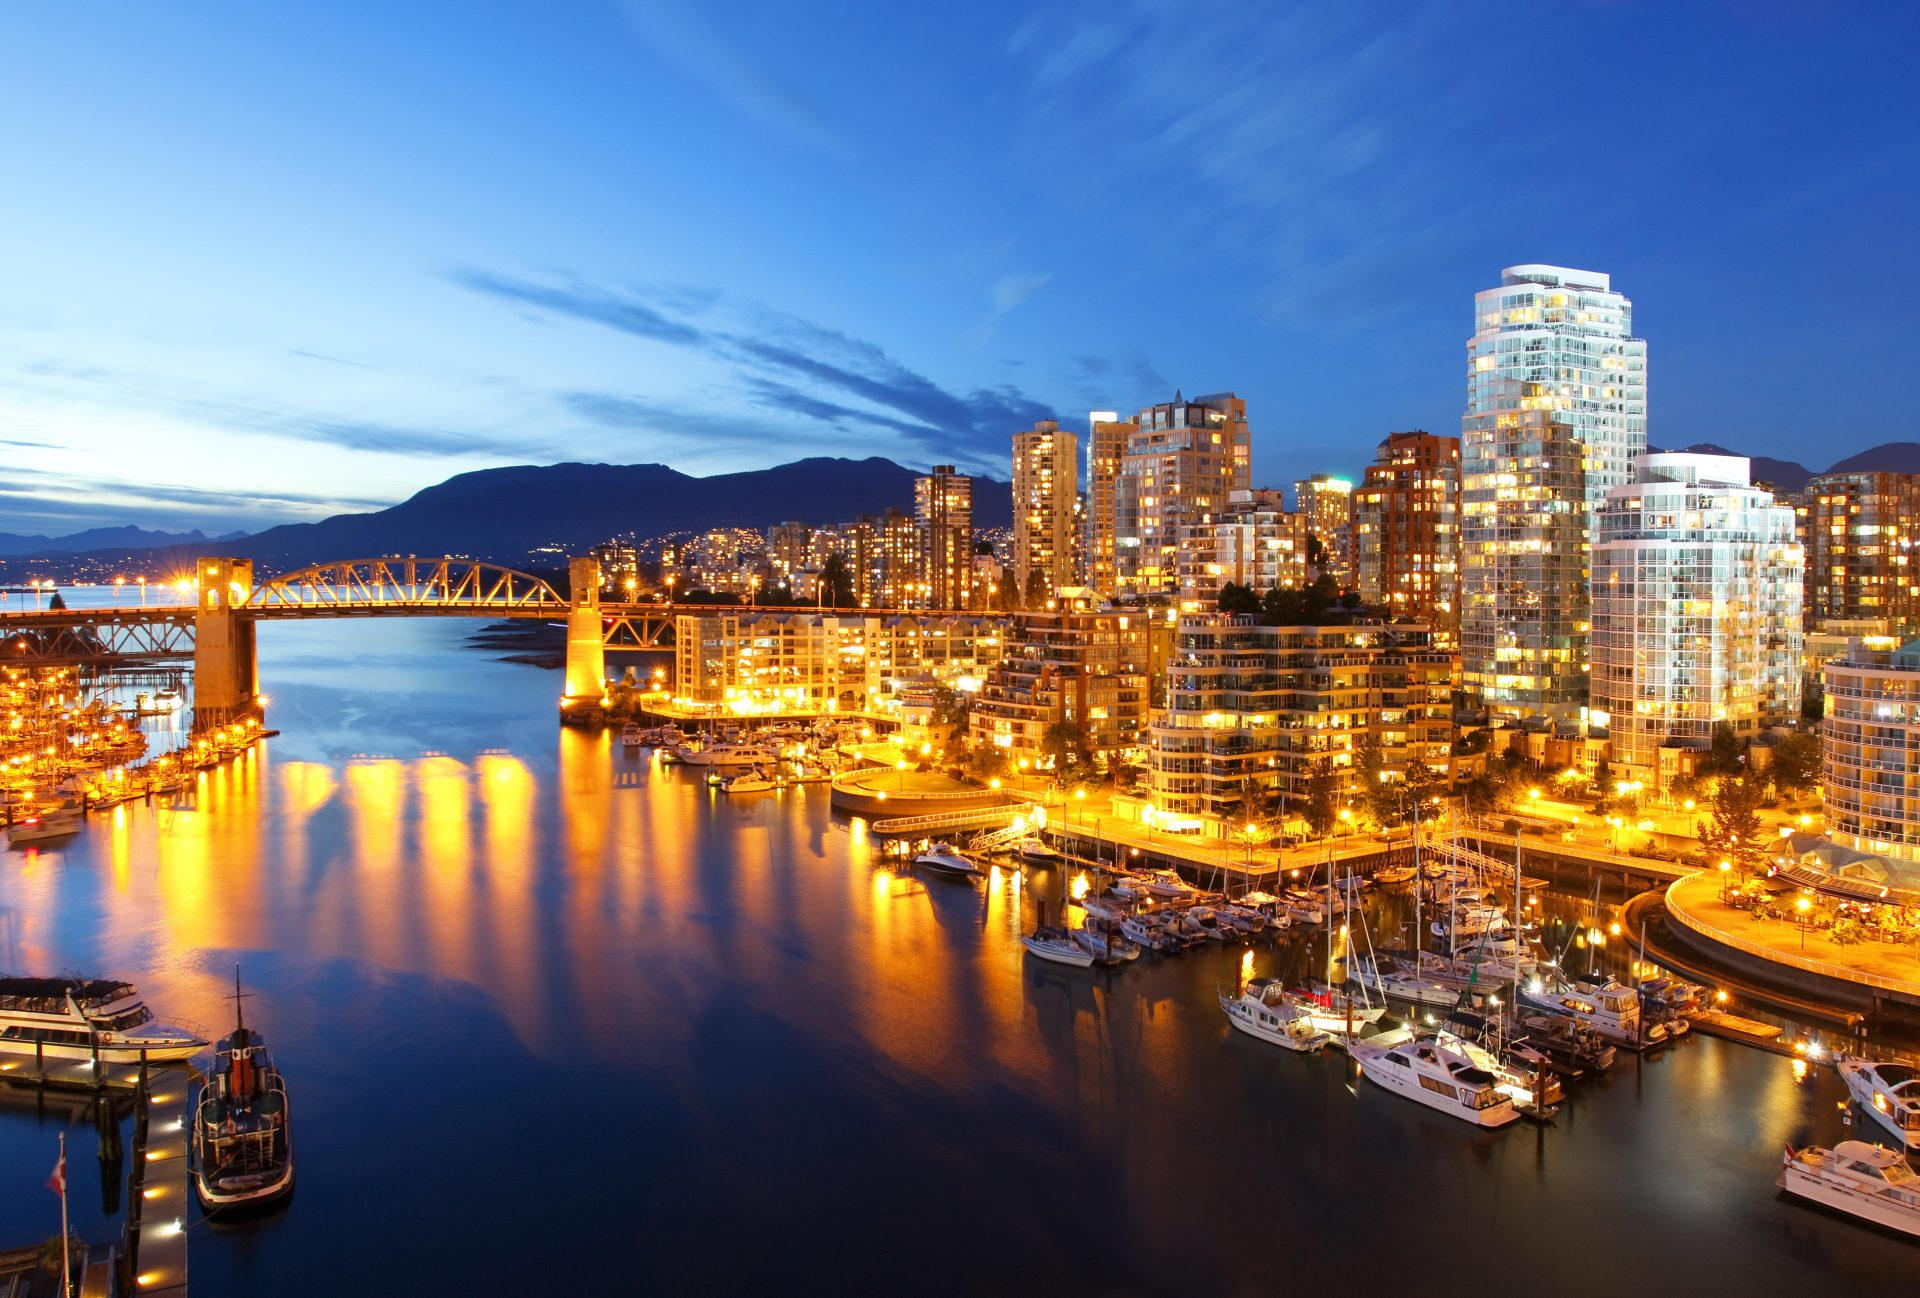 Mastercard and Canadian government partner to build $510M cybersecurity centre in Vancouver